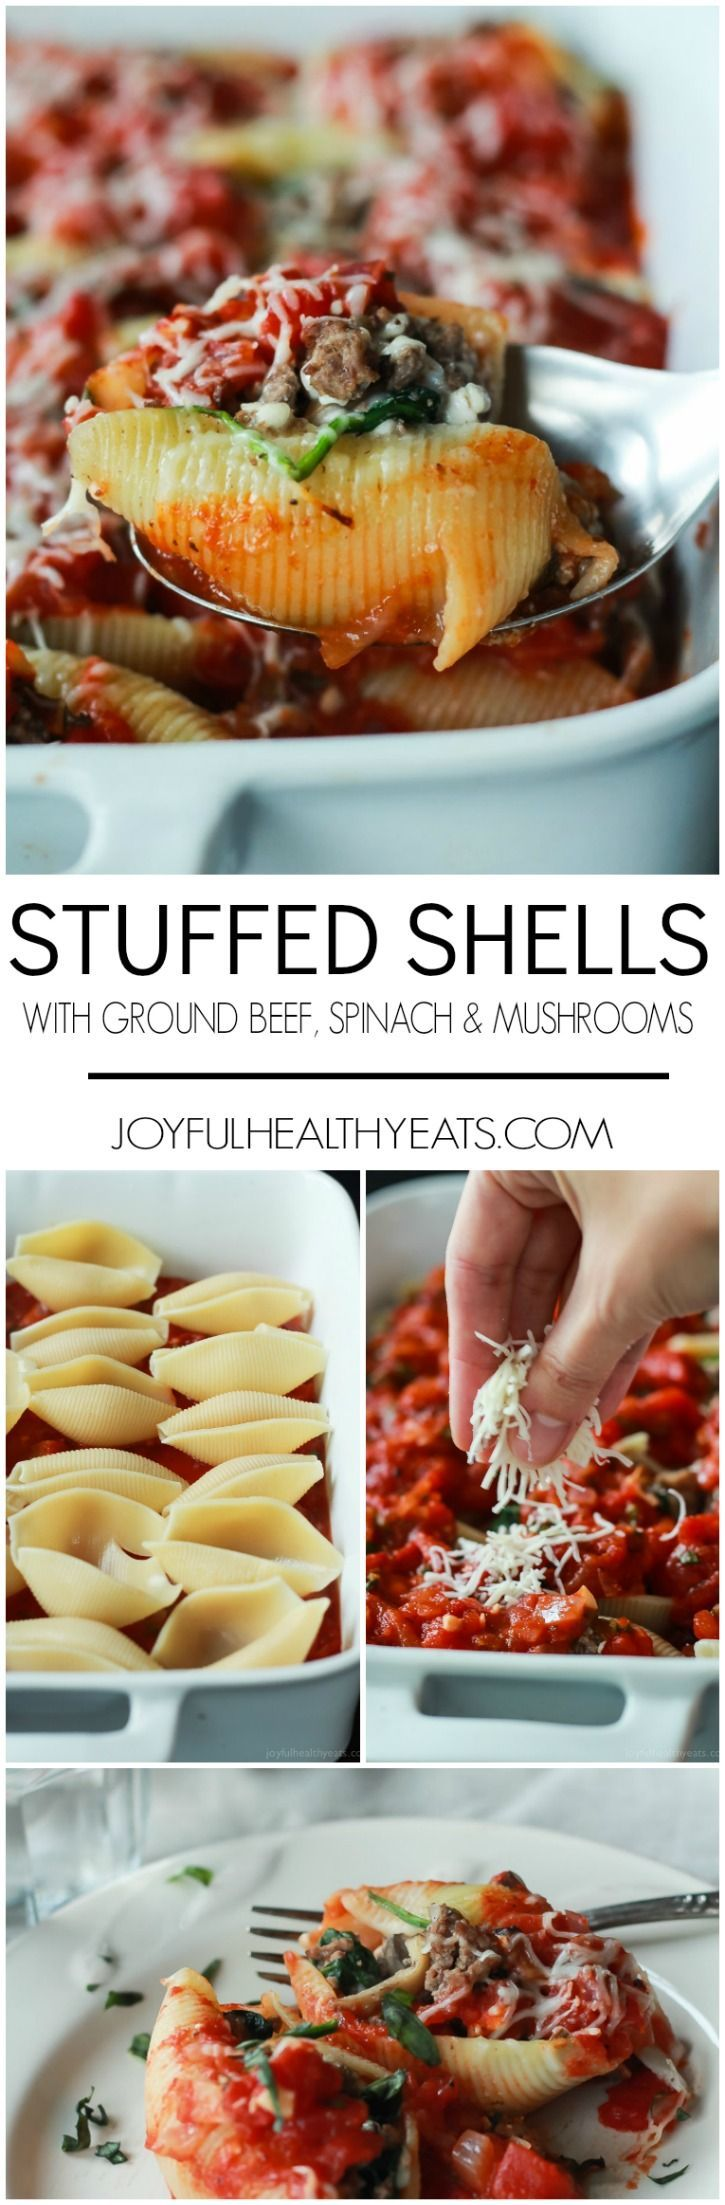 An easy Stuffed Shells recipe with ground beef, spinach, and mushrooms then topped with a homemade marinara sauce - all for only 223 calories per serving! | joyfulhealthyeats... #recipes